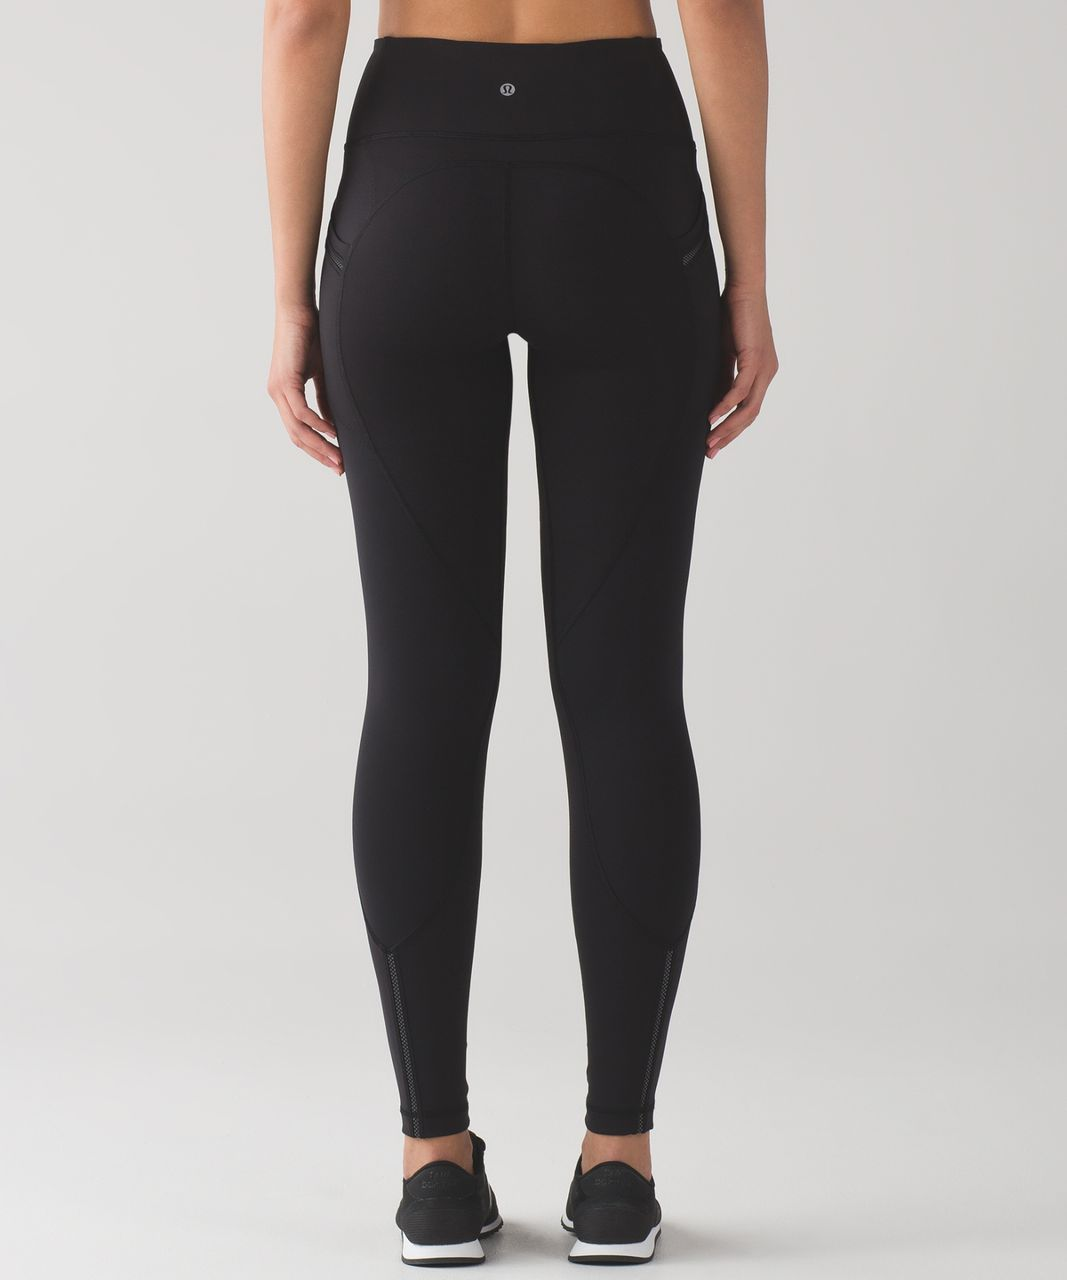 Lululemon All The Right Places Pant II (Reflective) - Black